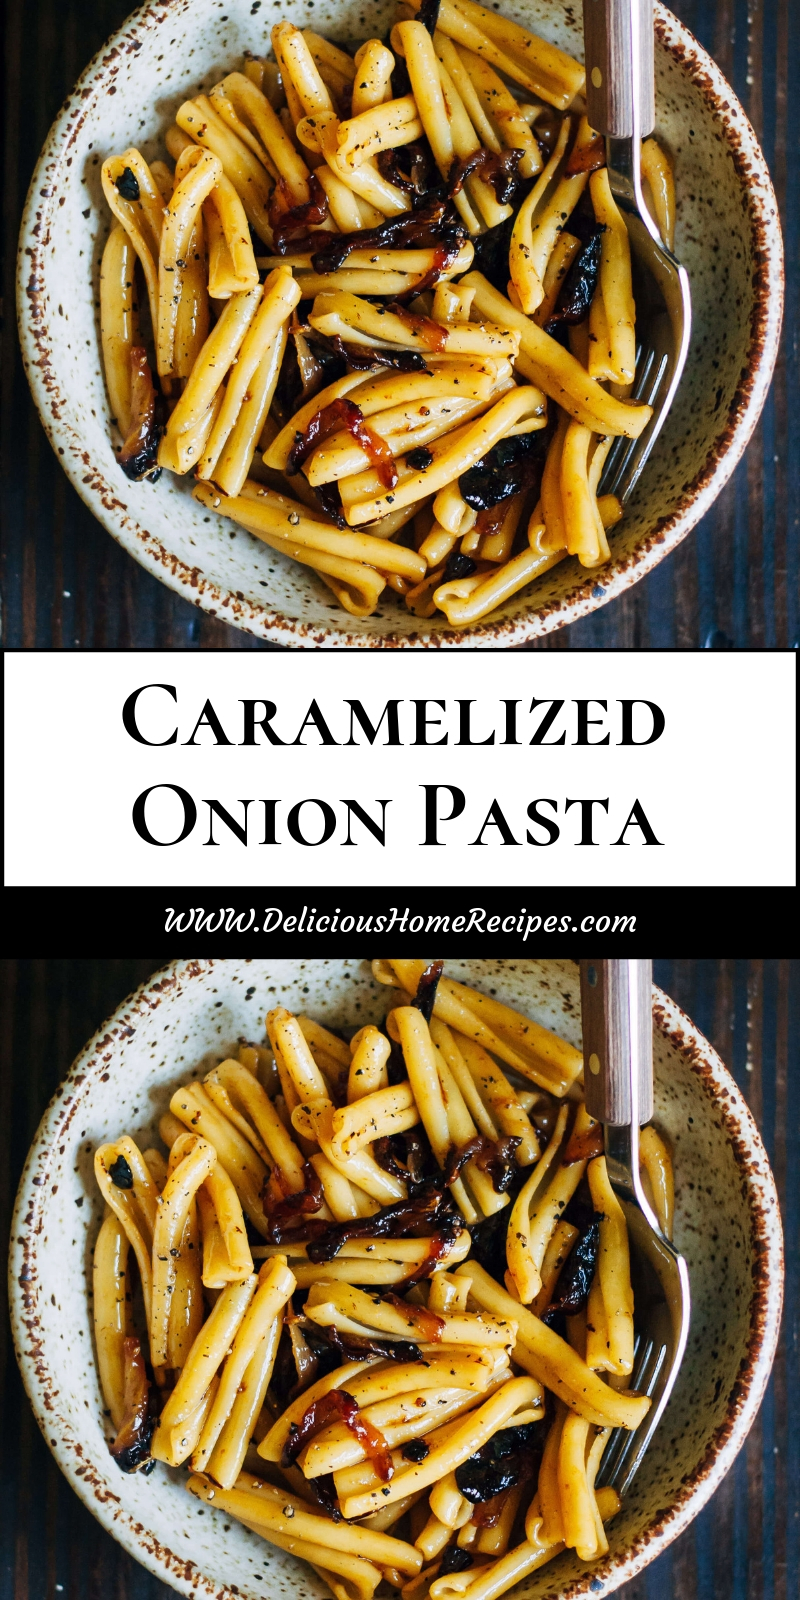 Caramelized Onion Pasta